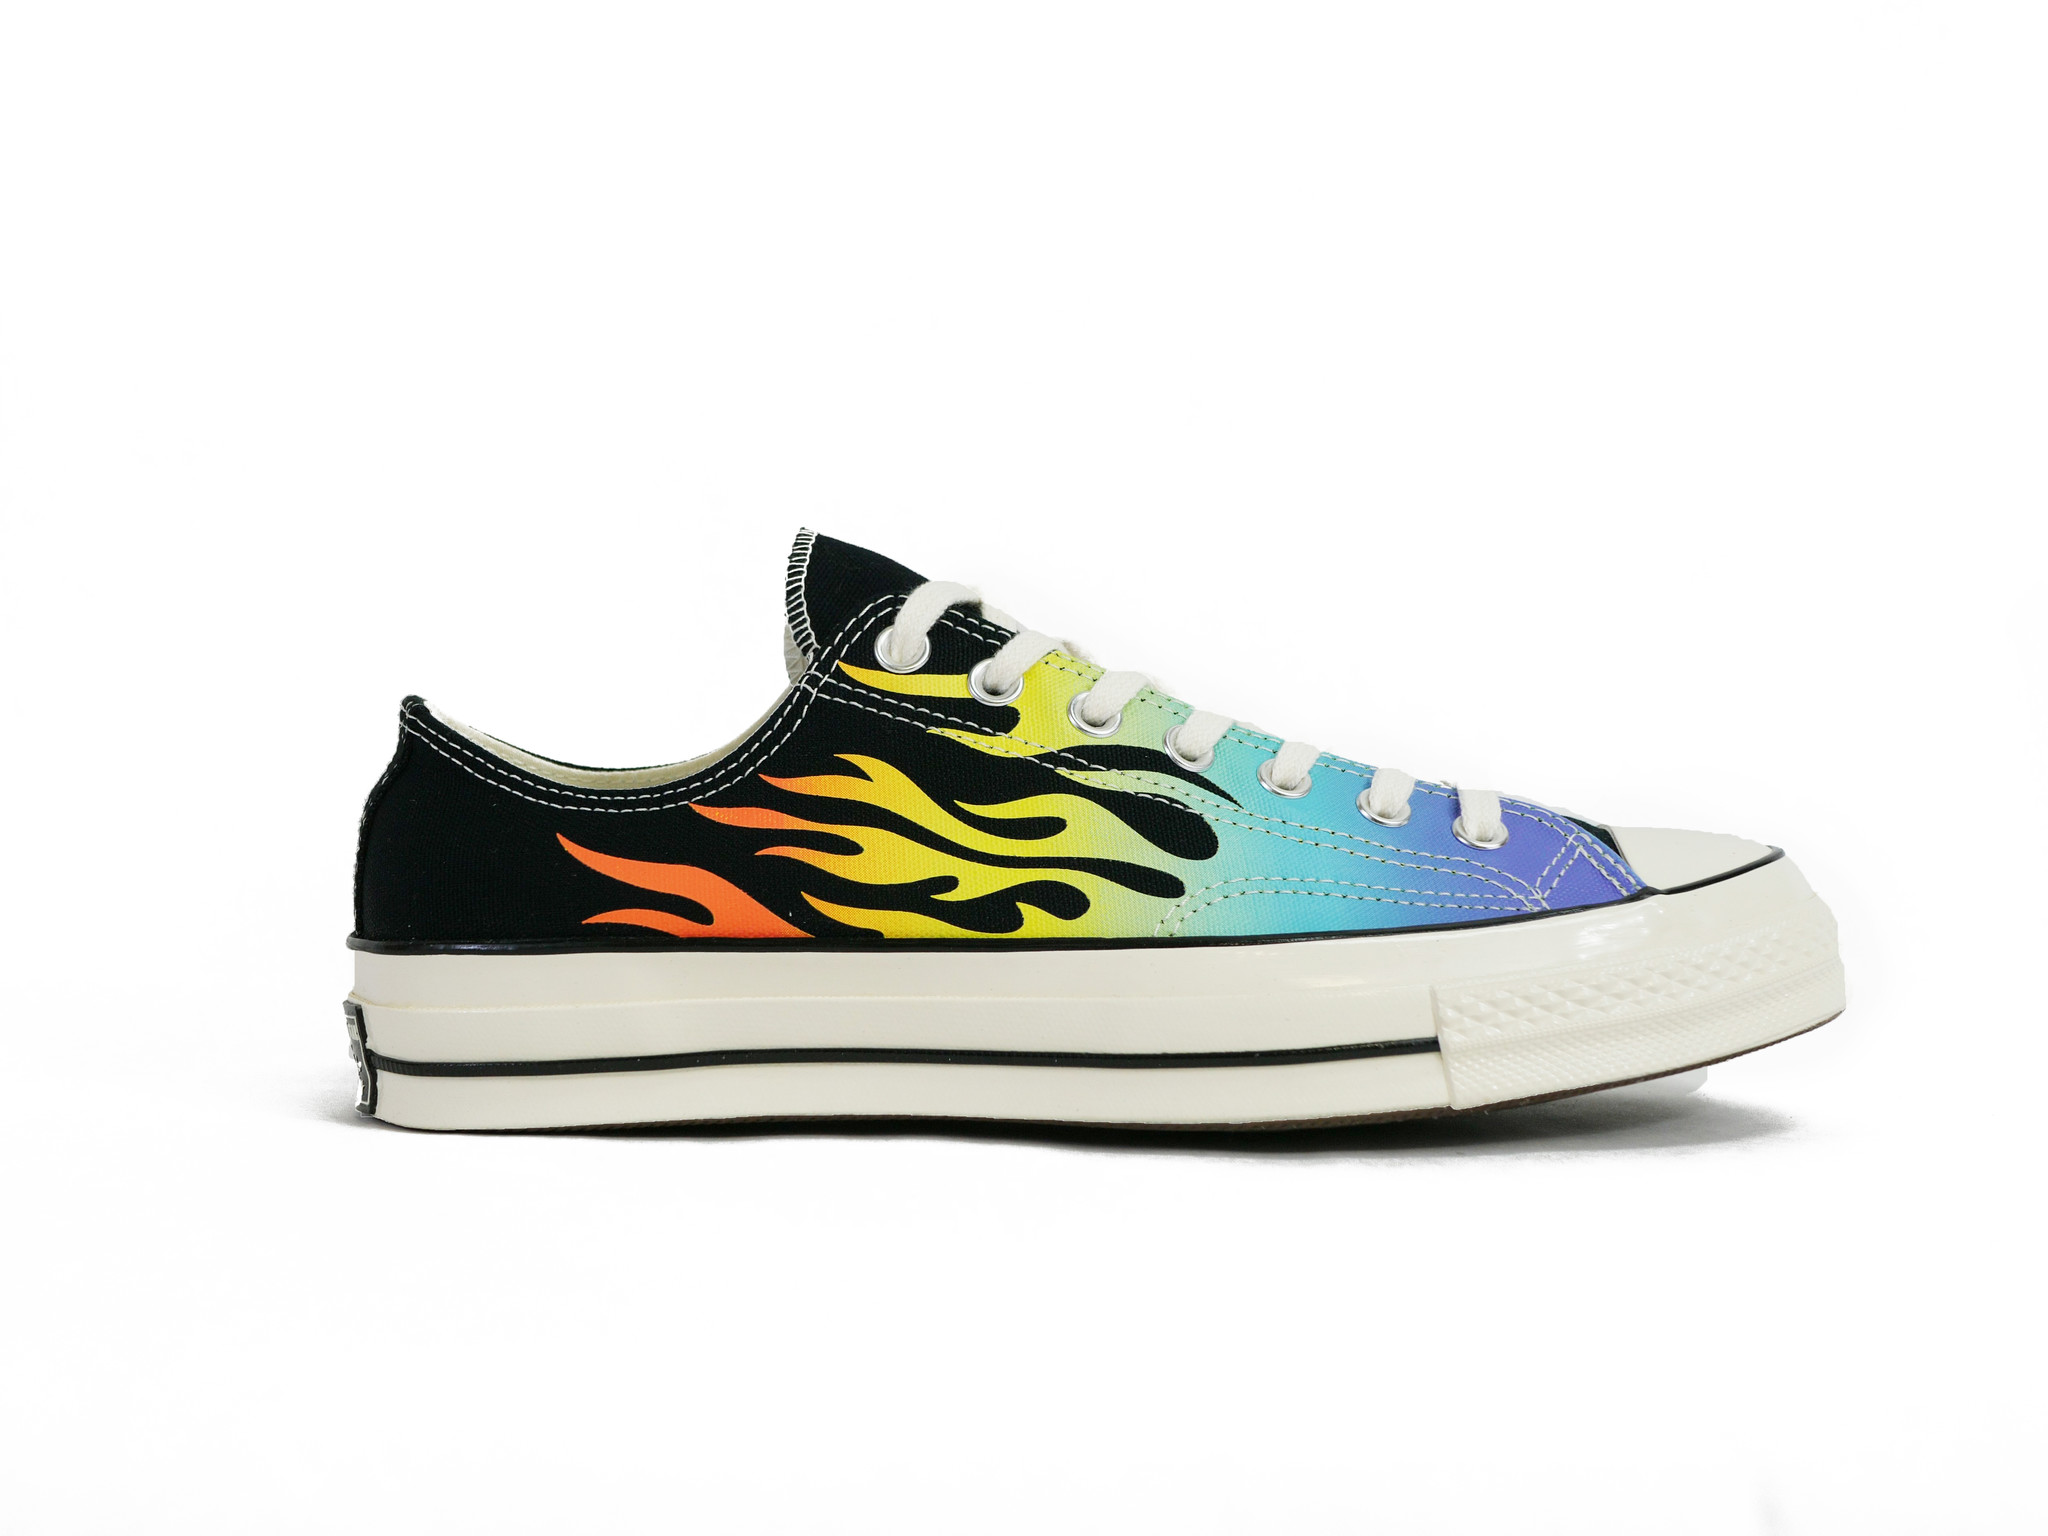 buy popular e3849 319c7 CONVERSE CHUCK 70 LOW ARCHIVE FLAME PRINT